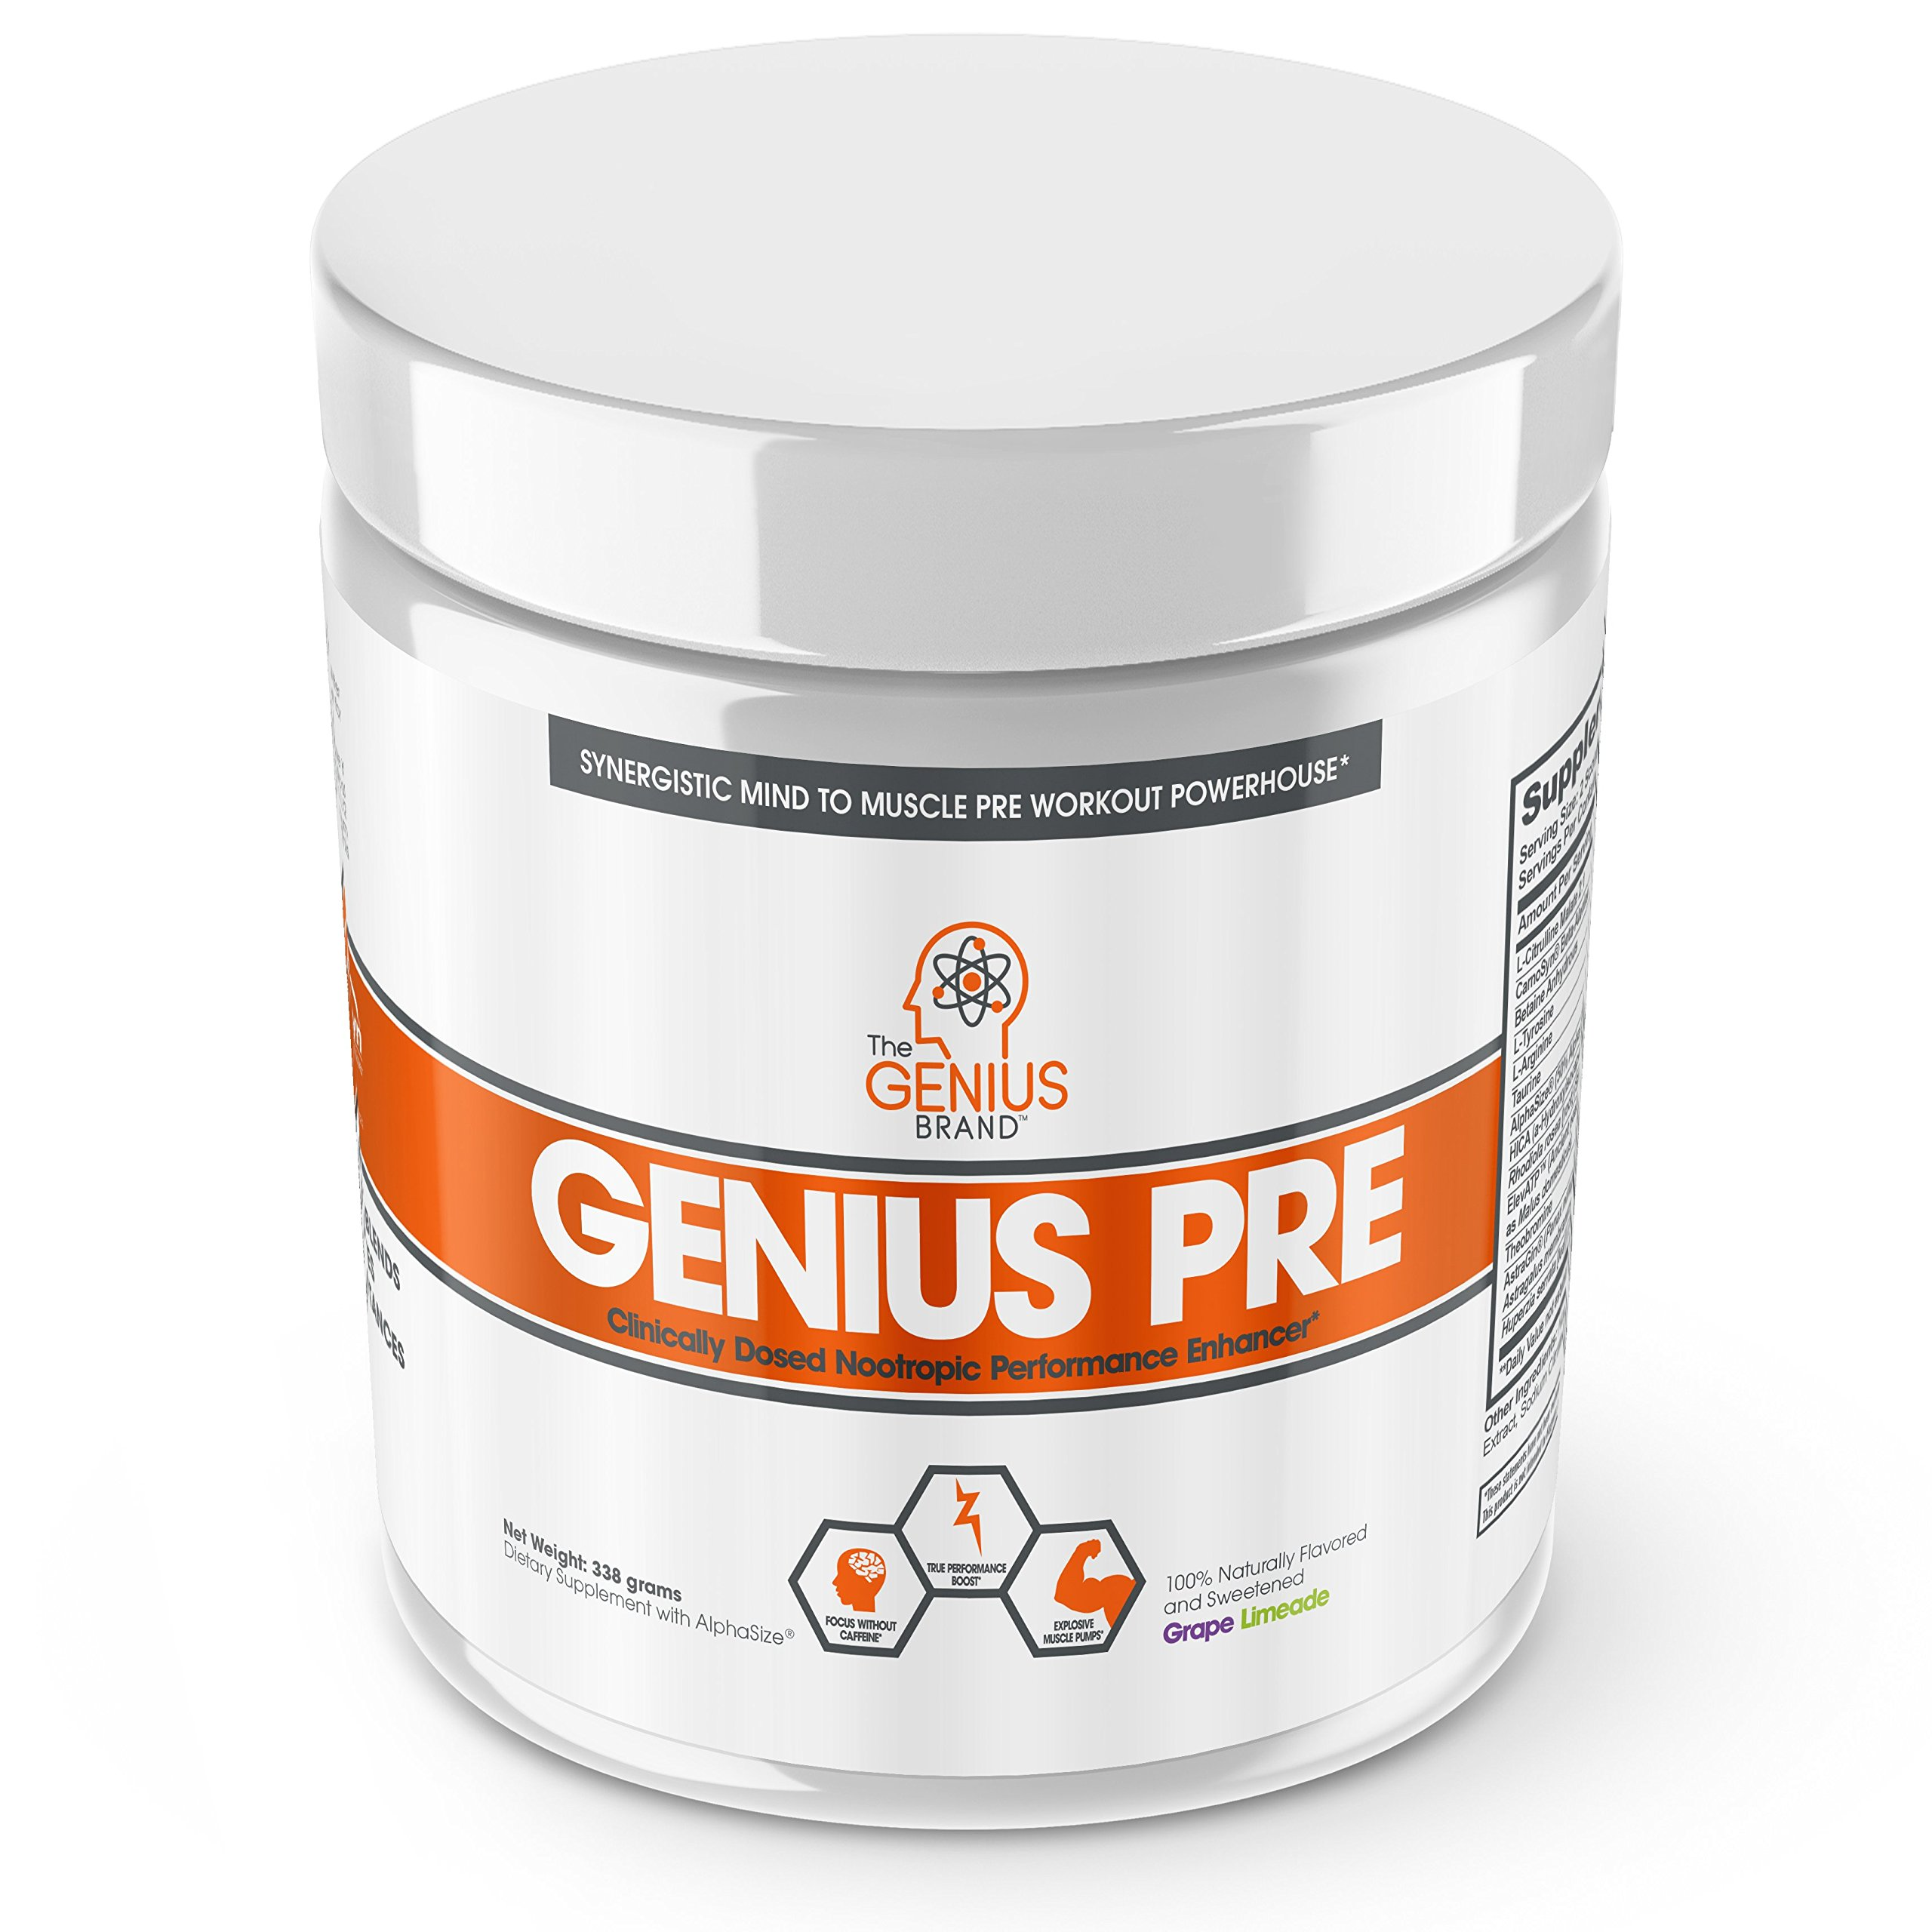 Genius Pre Workout - All Natural Nootropic Preworkout Powder & Caffeine-Free Nitric Oxide Booster with Beta Alanine and Alpha GPC - Focus, Energy and Muscle Building Supplement, Grape Limeade, 338G by The Genius Brand